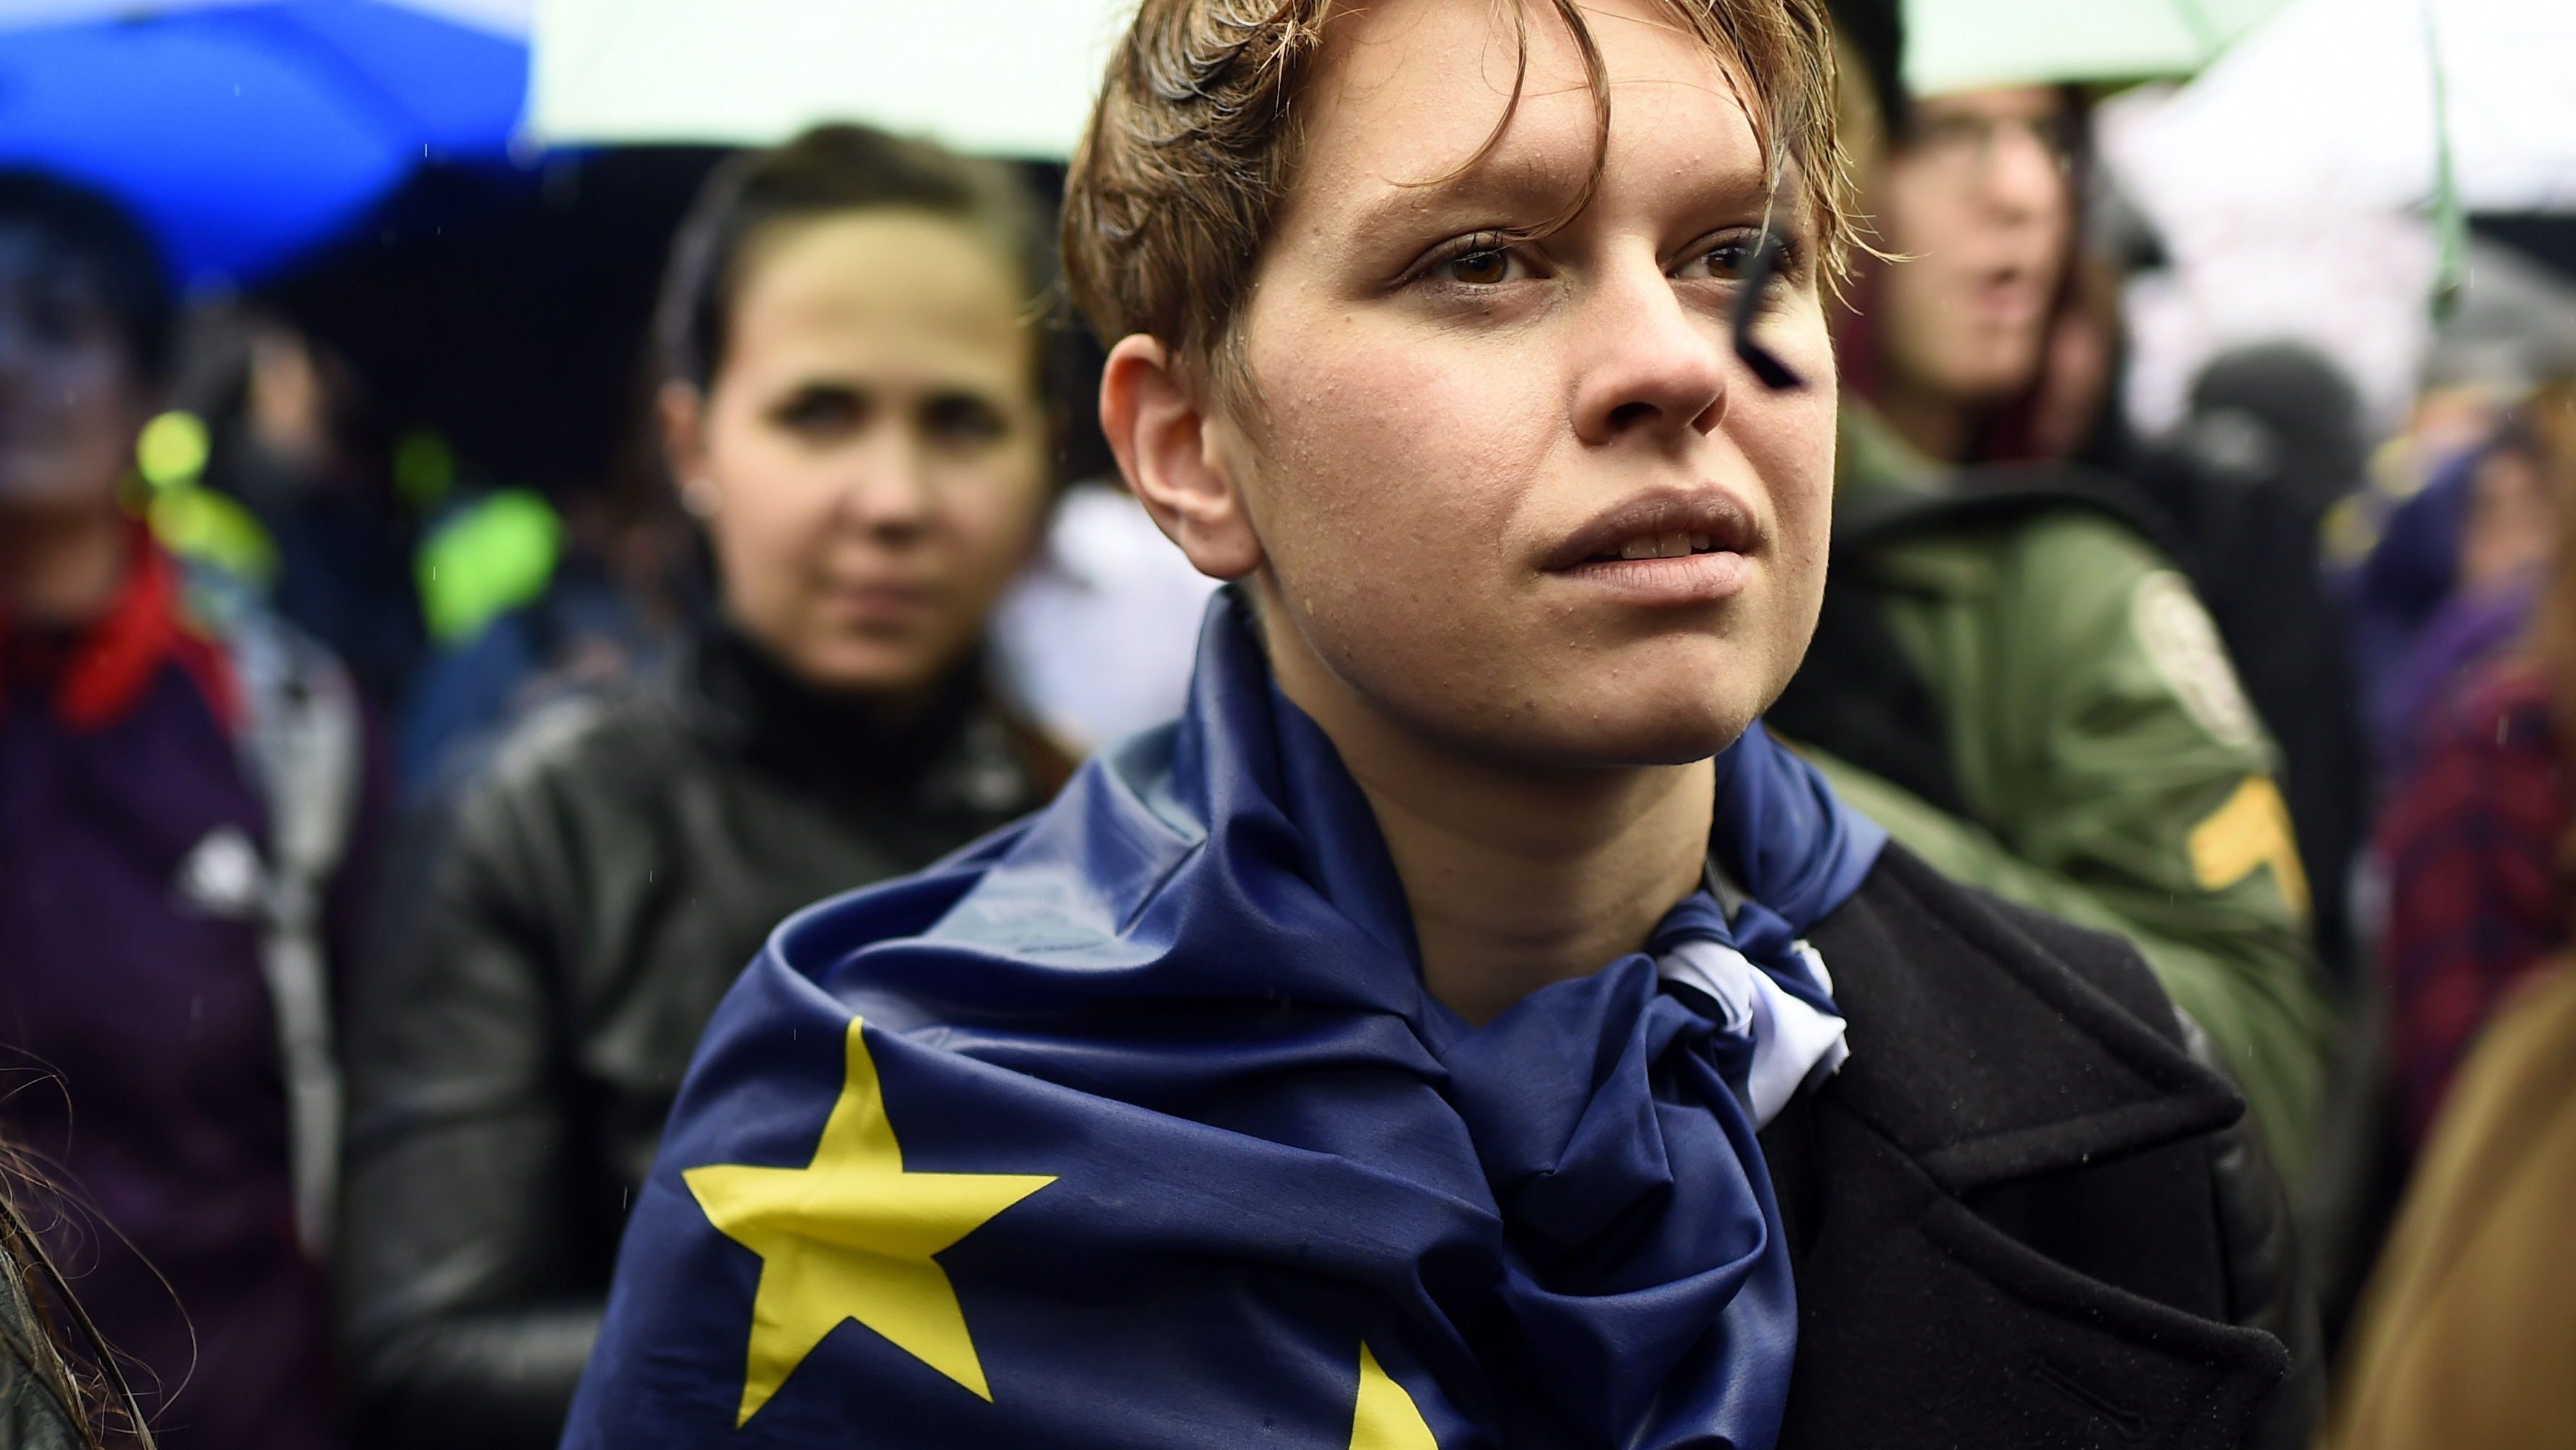 Demonstrators take part in a protest aimed at showing London's solidarity with the European Union following the recent EU referendum, inTrafalgar Square, central London